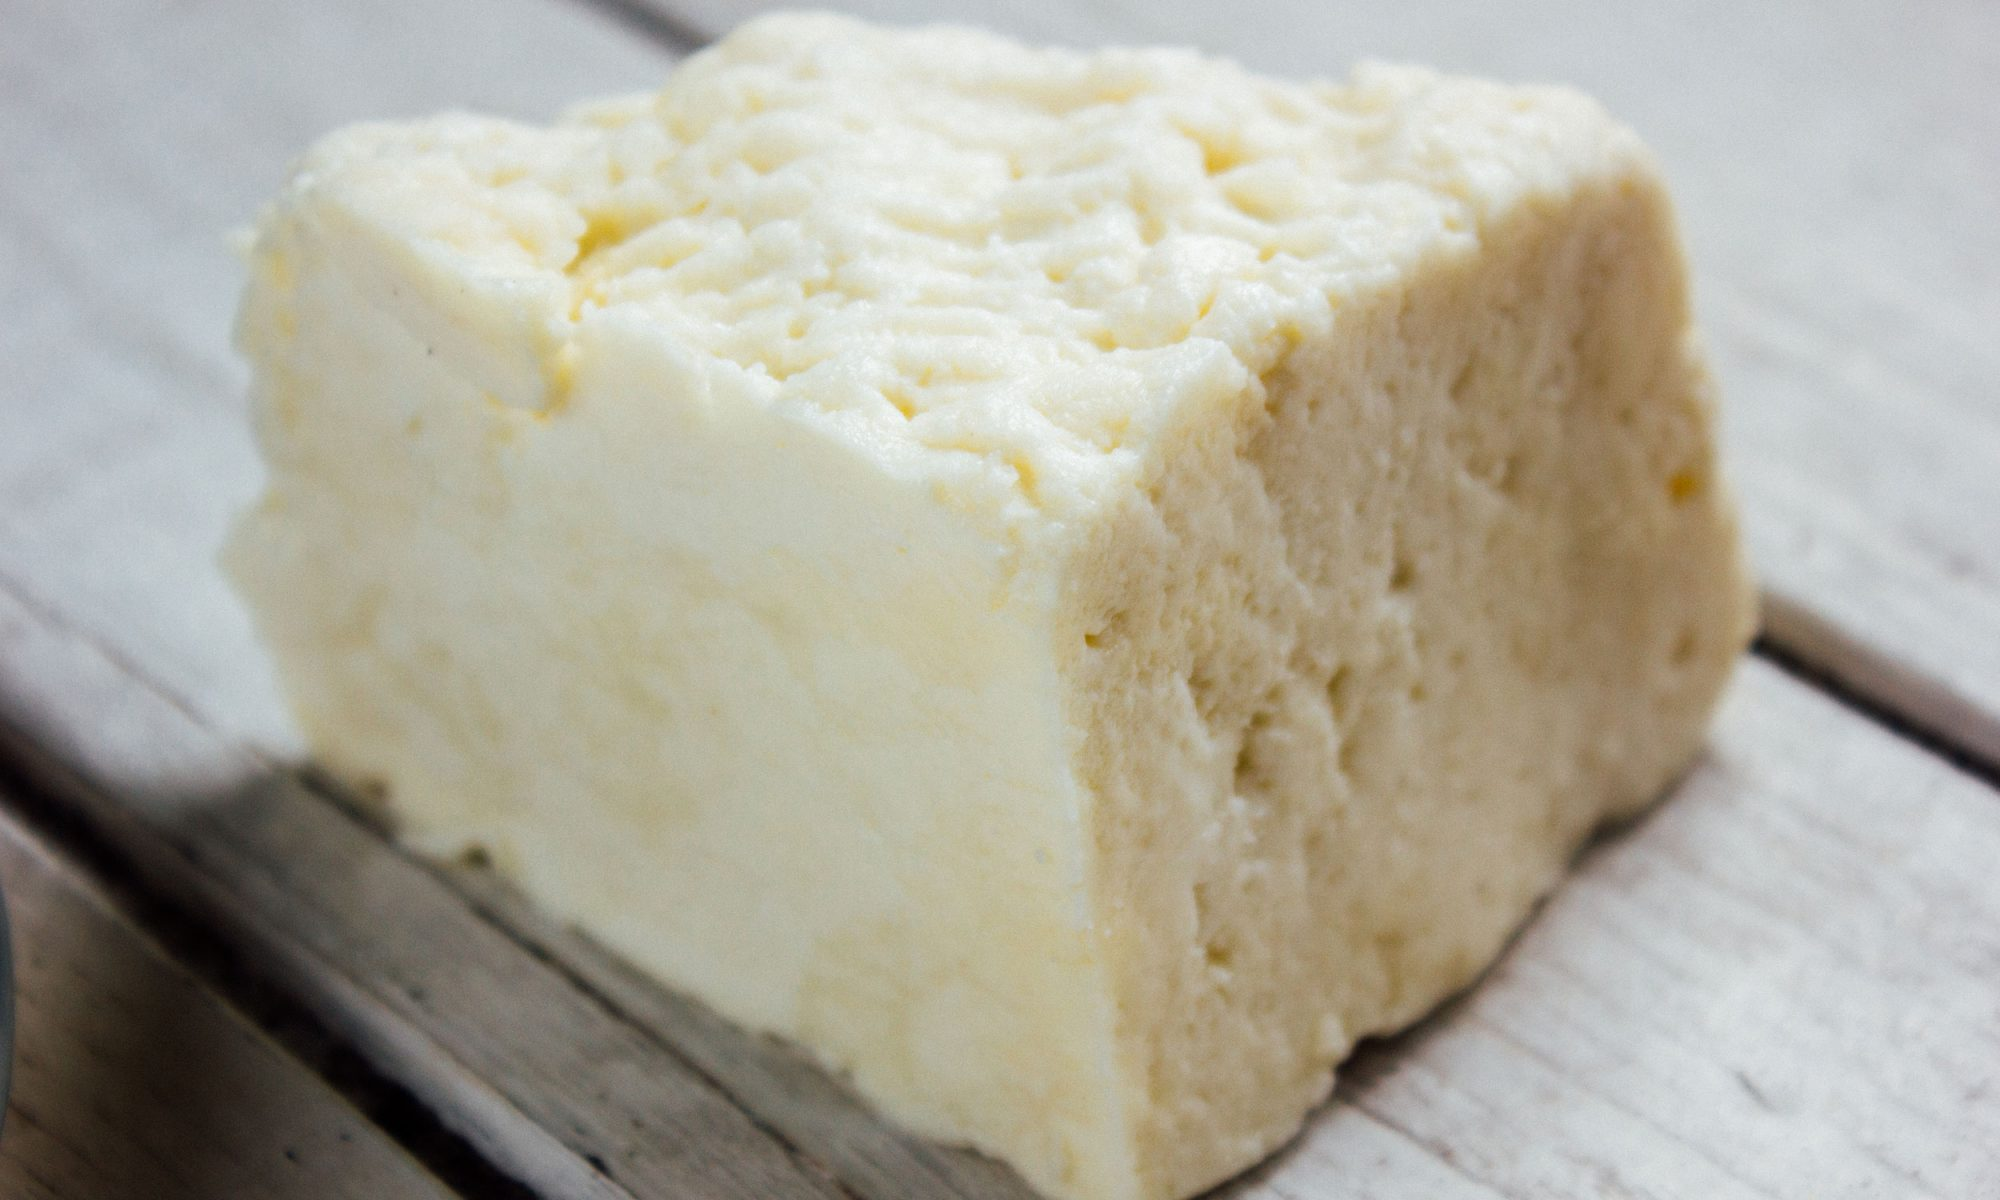 EC: Use Sour Milk to Make Cheese